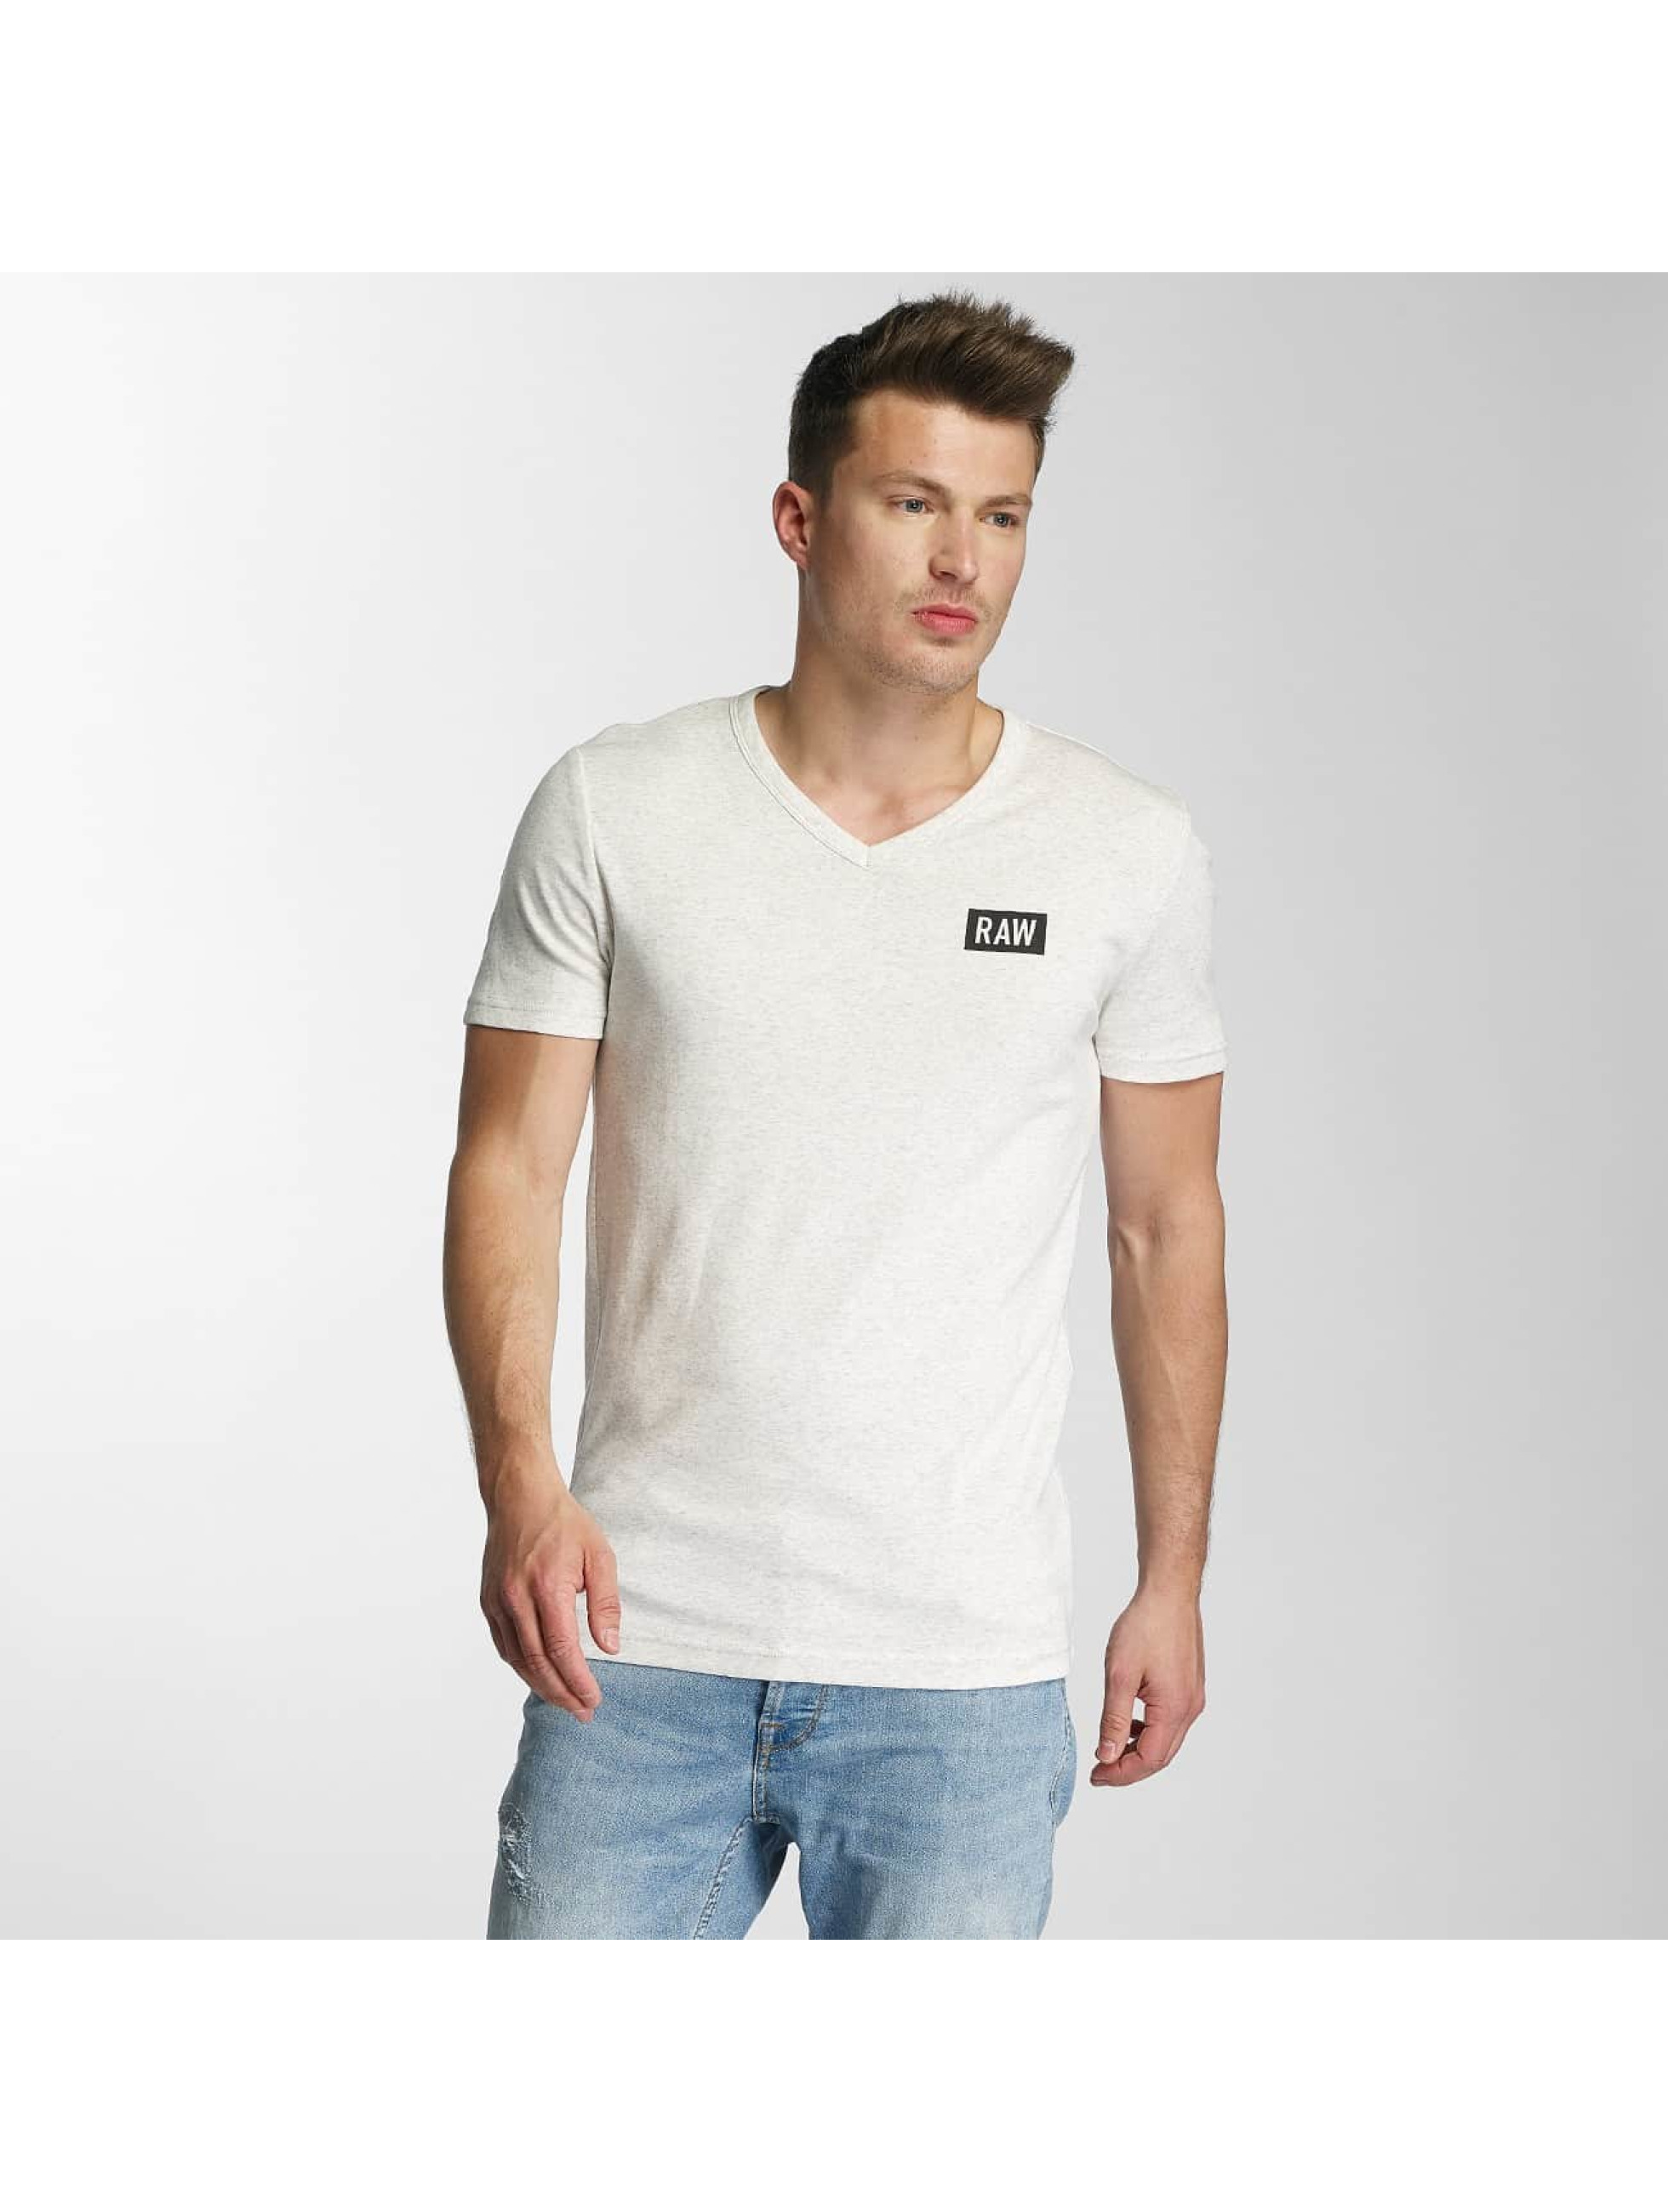 G-Star Männer T-Shirt Drillon Cool Rib in weiß